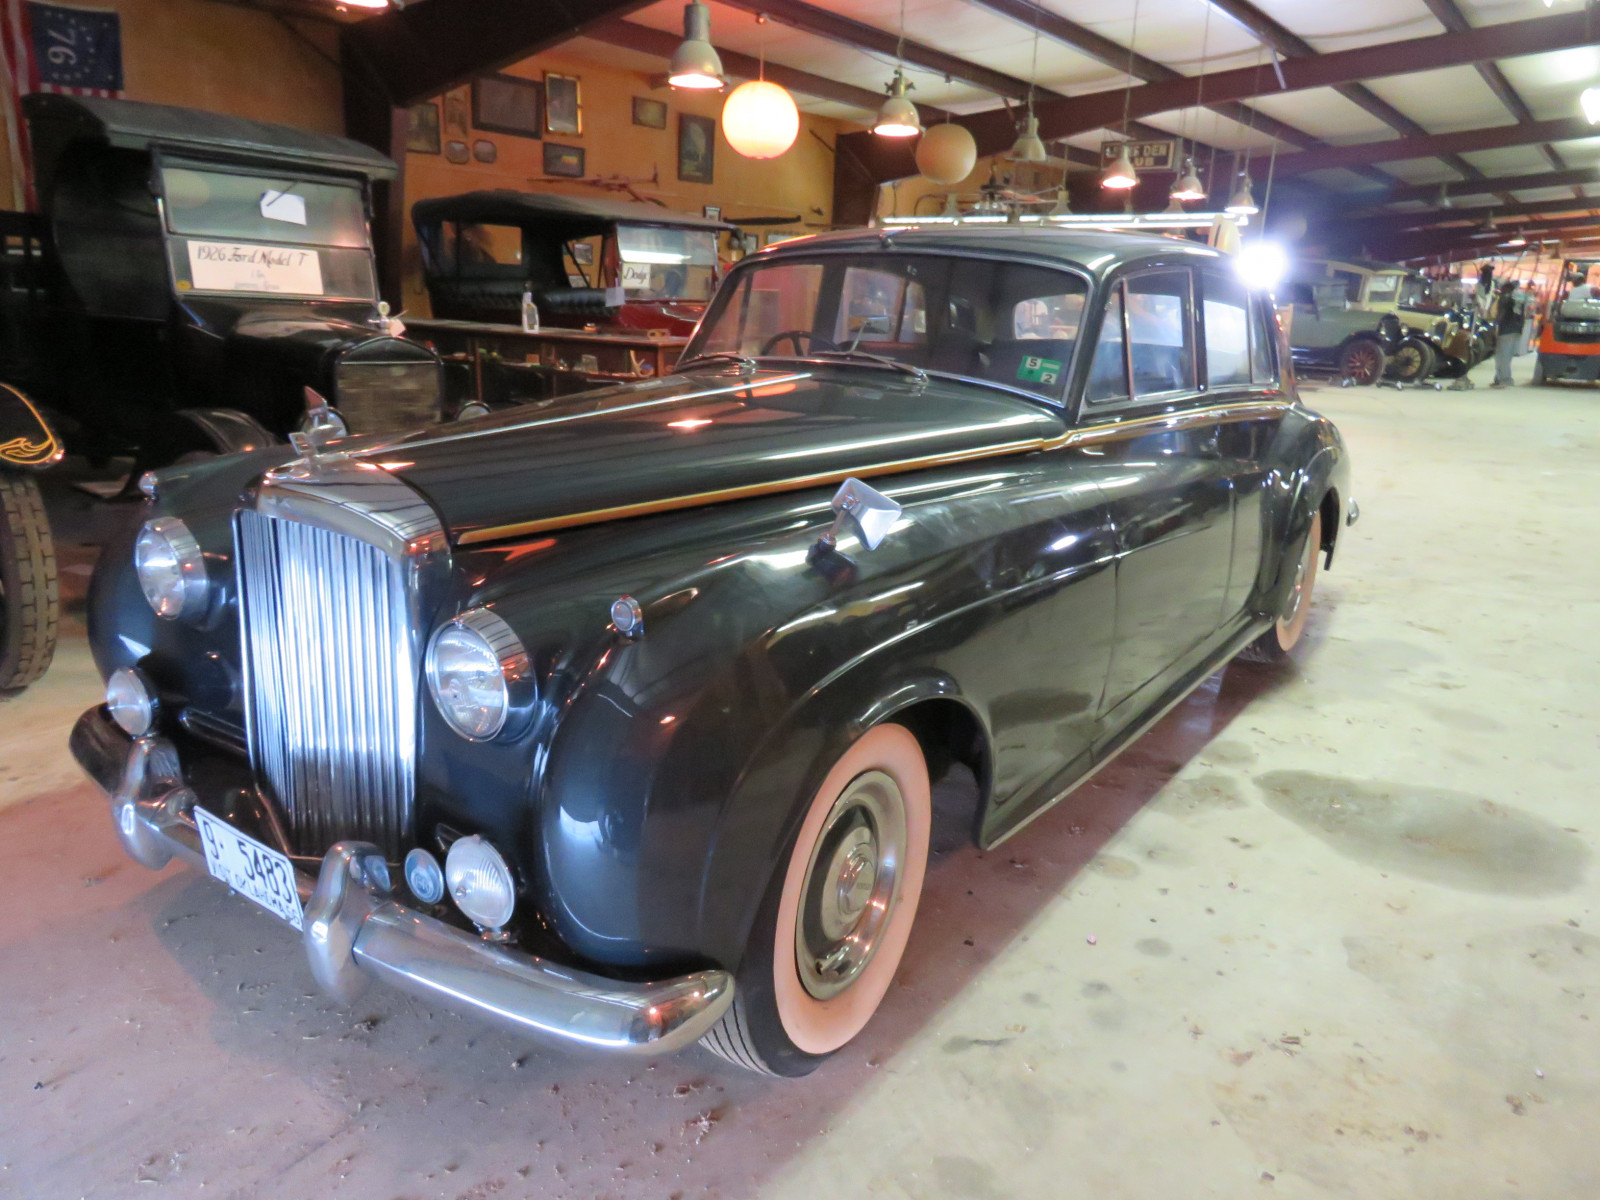 1956 Bentley 4dr Sedan - Image 3